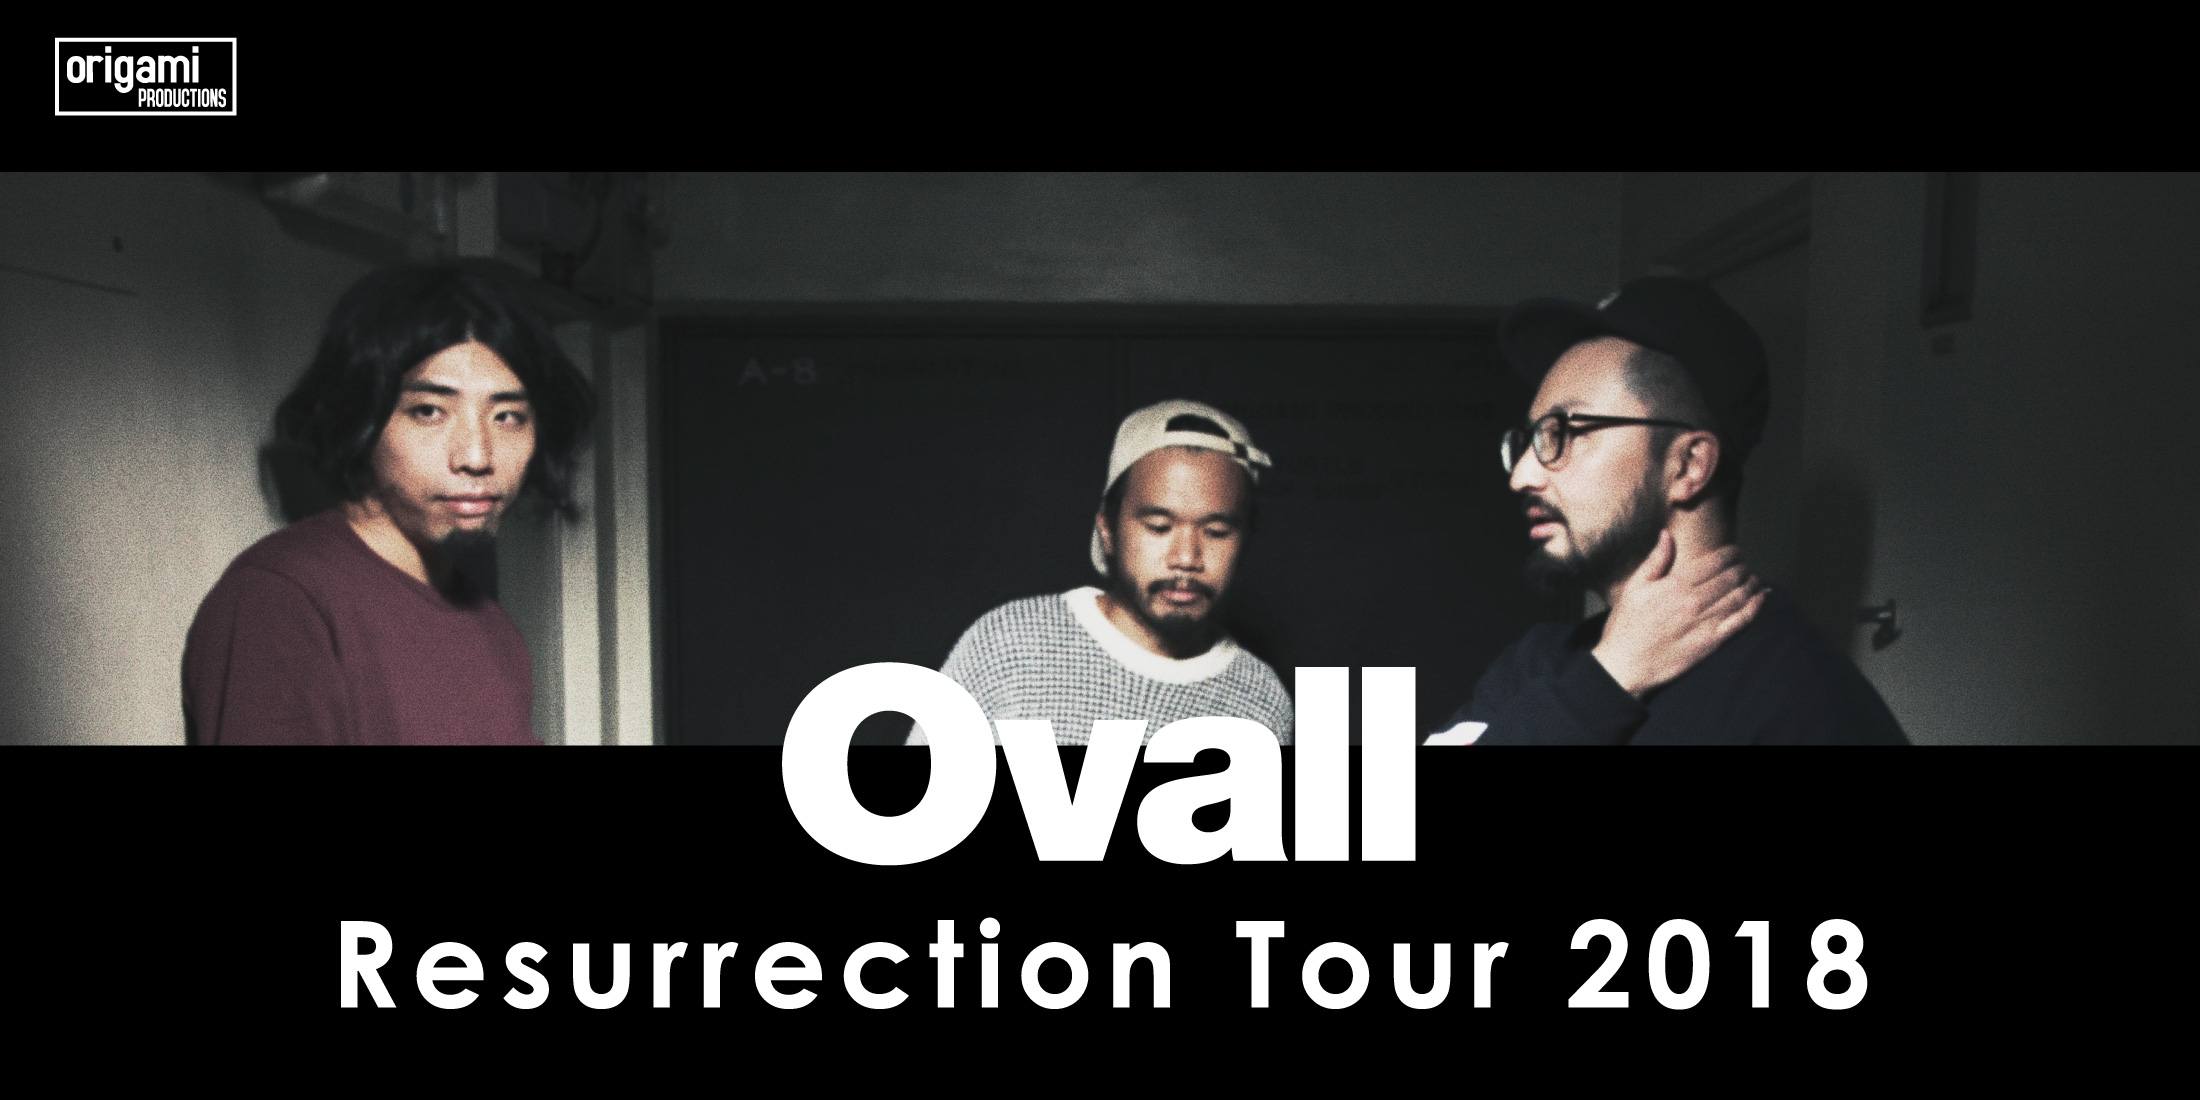 Resurrection Tour 2018